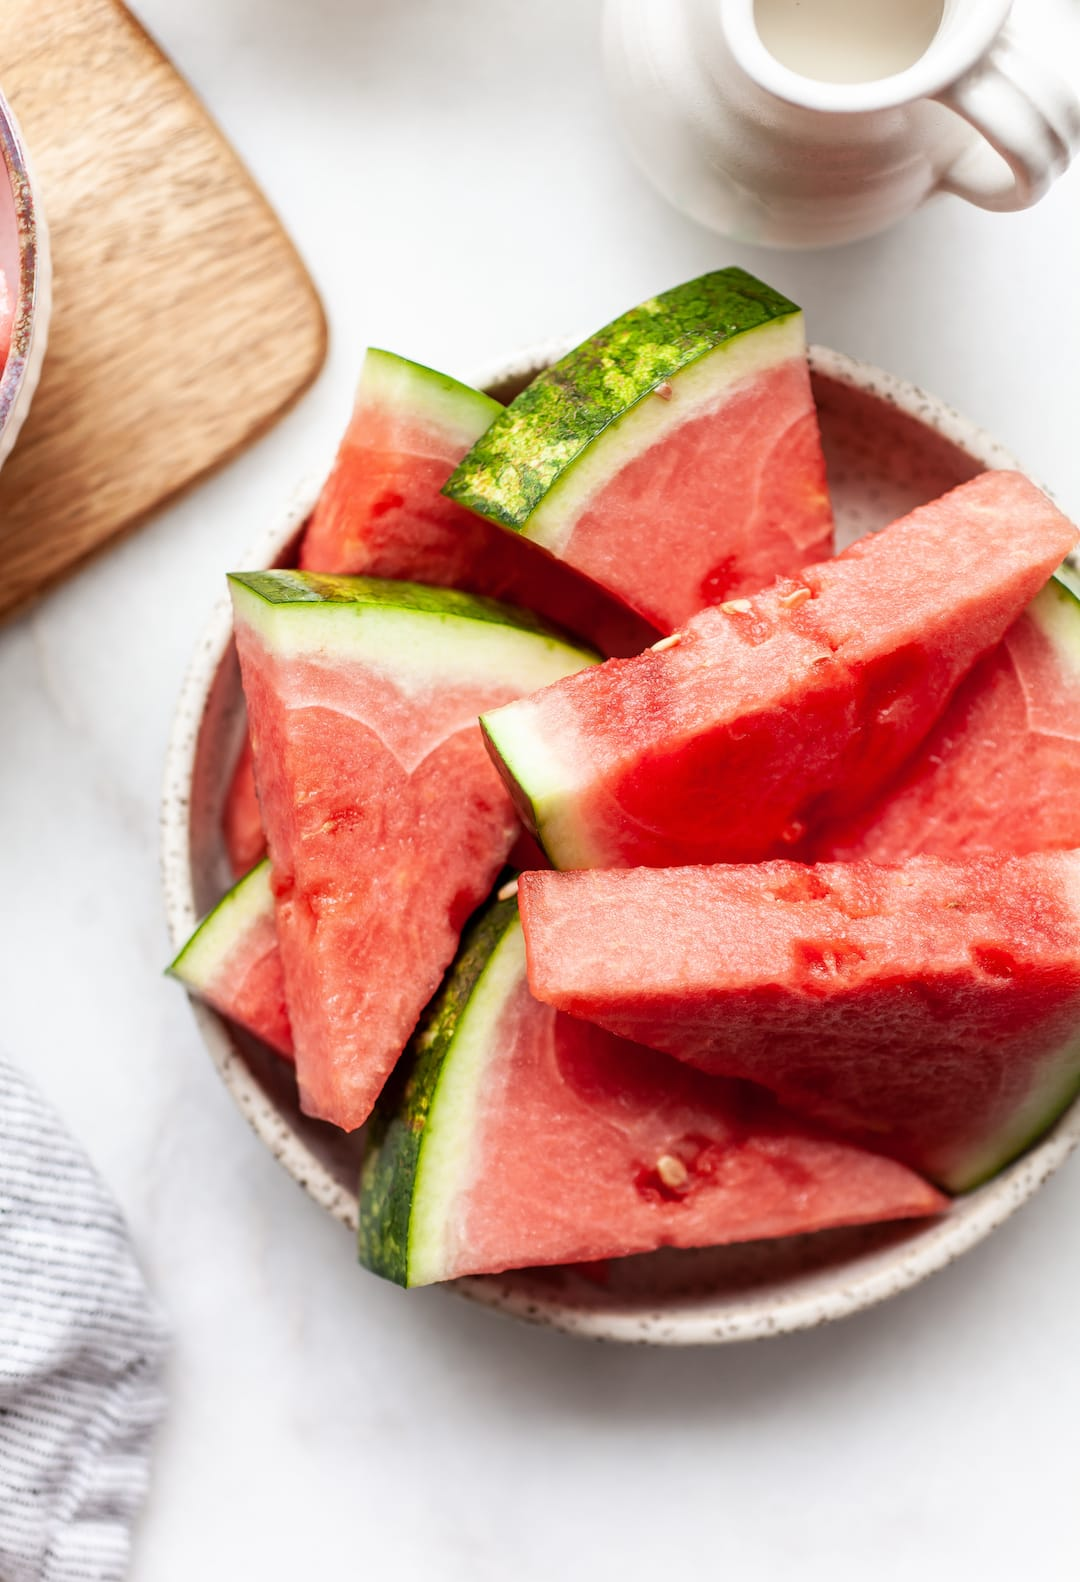 sliced watermelon triangles on a plate